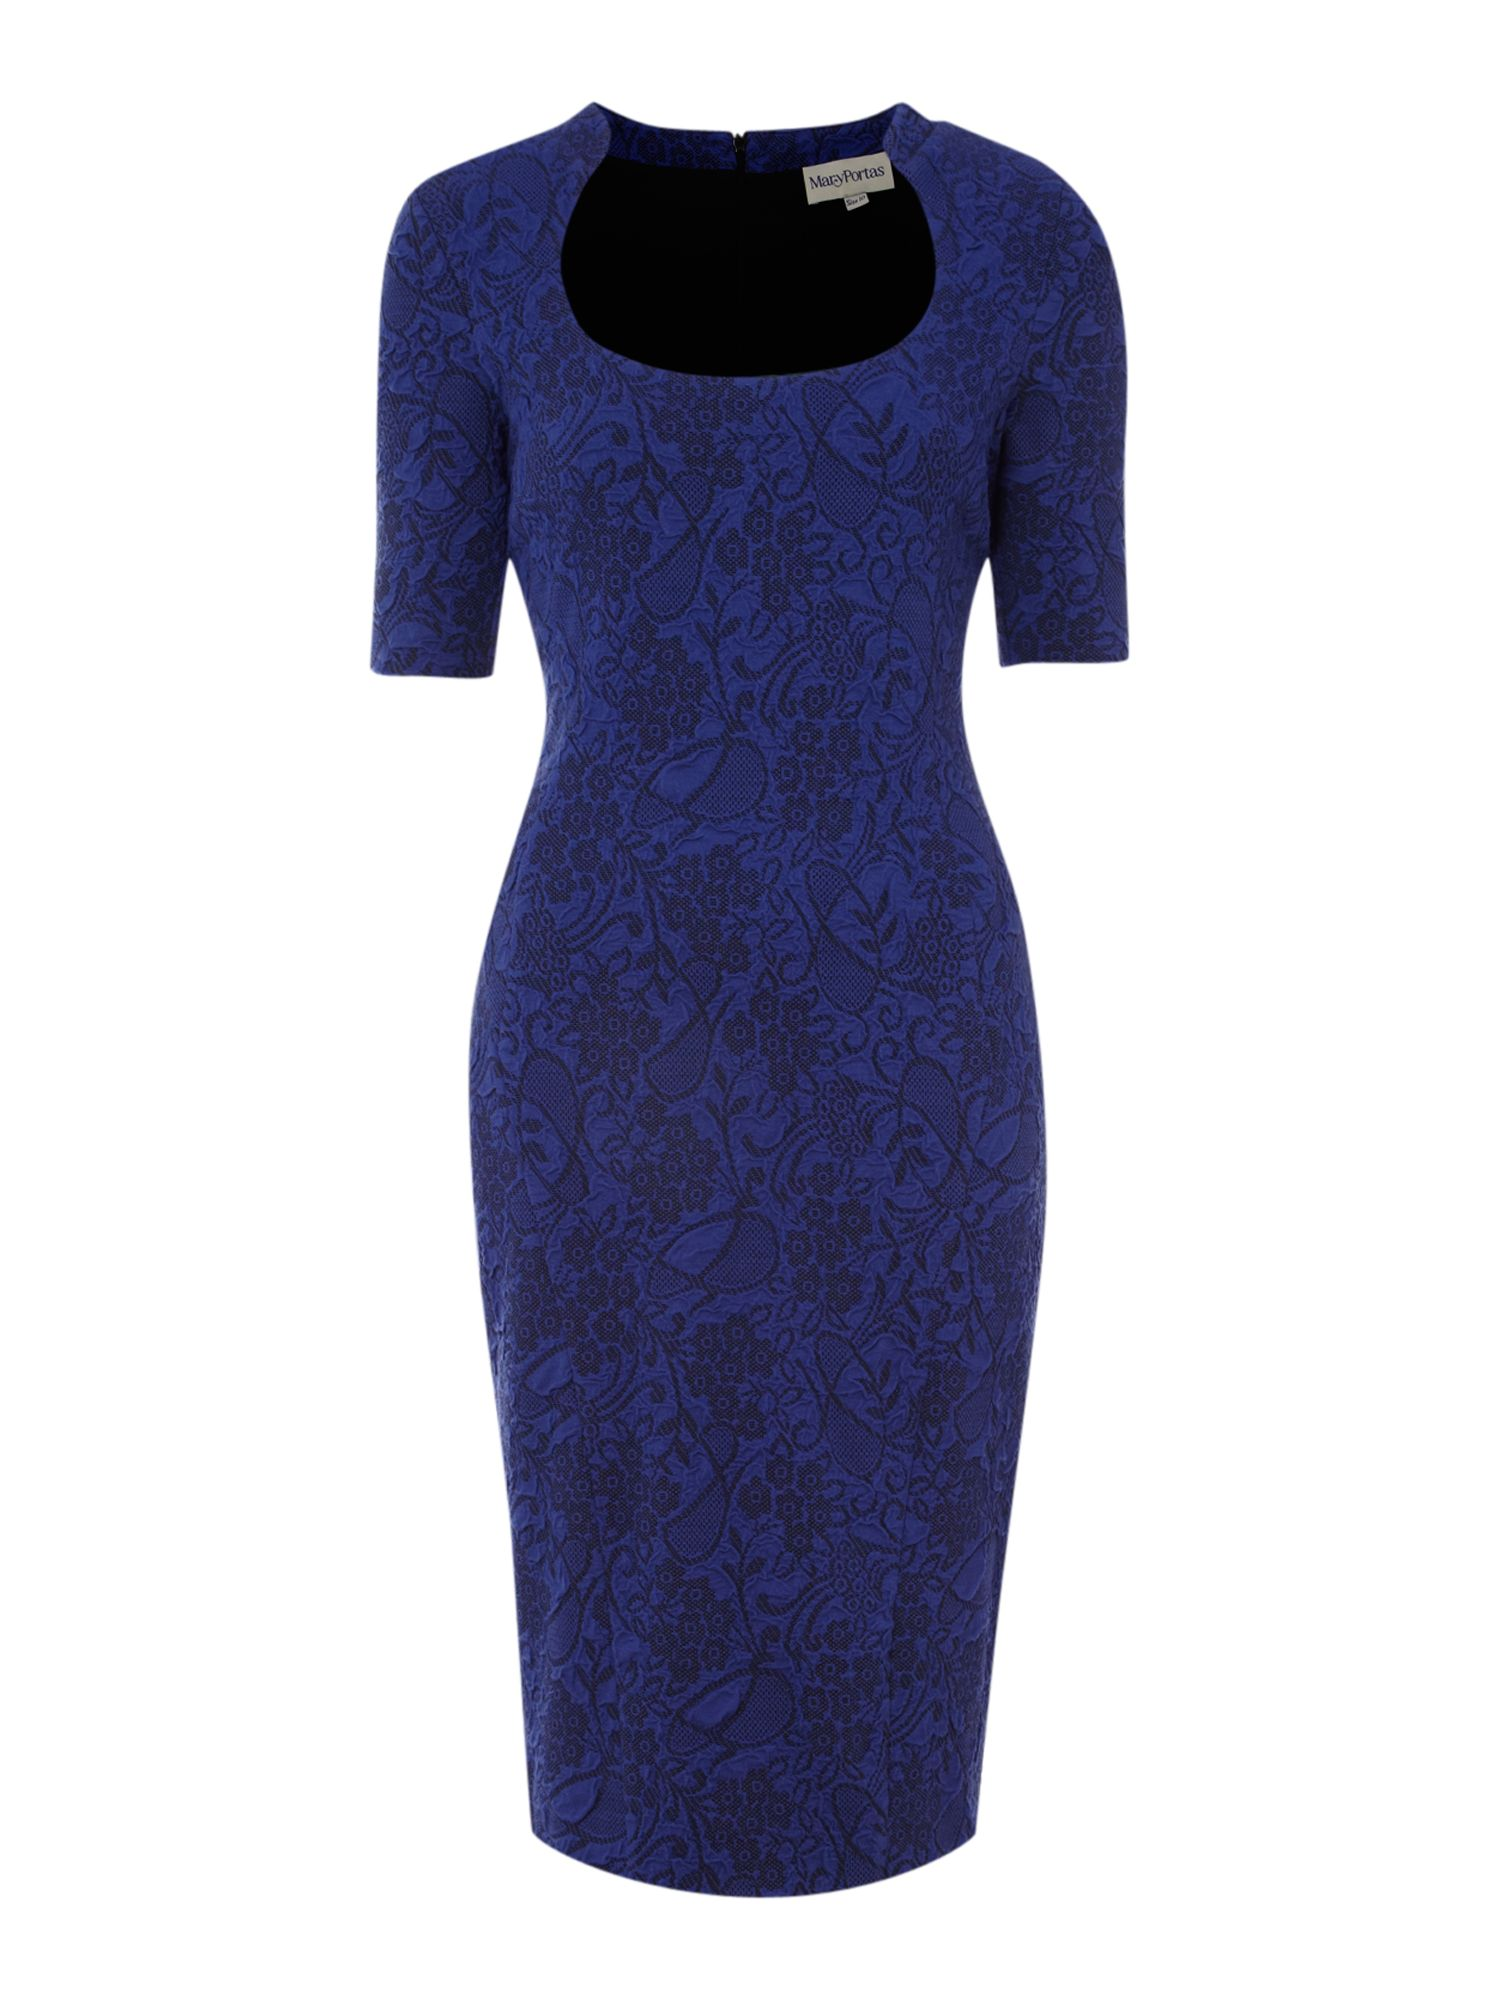 Bodycon lace dress